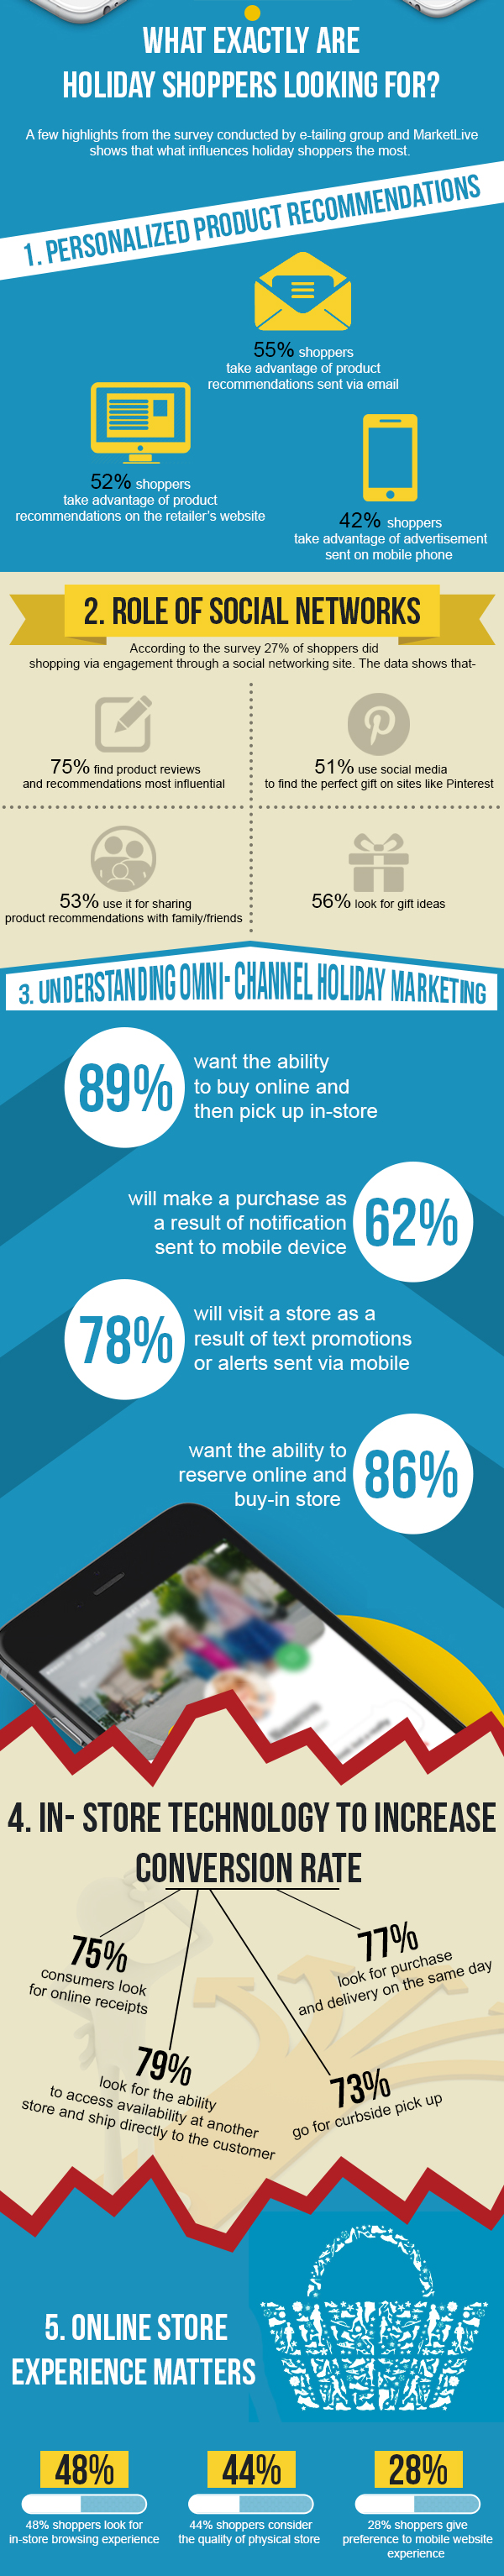 What Exactly Are Holiday Shoppers Looking For?   Velsof